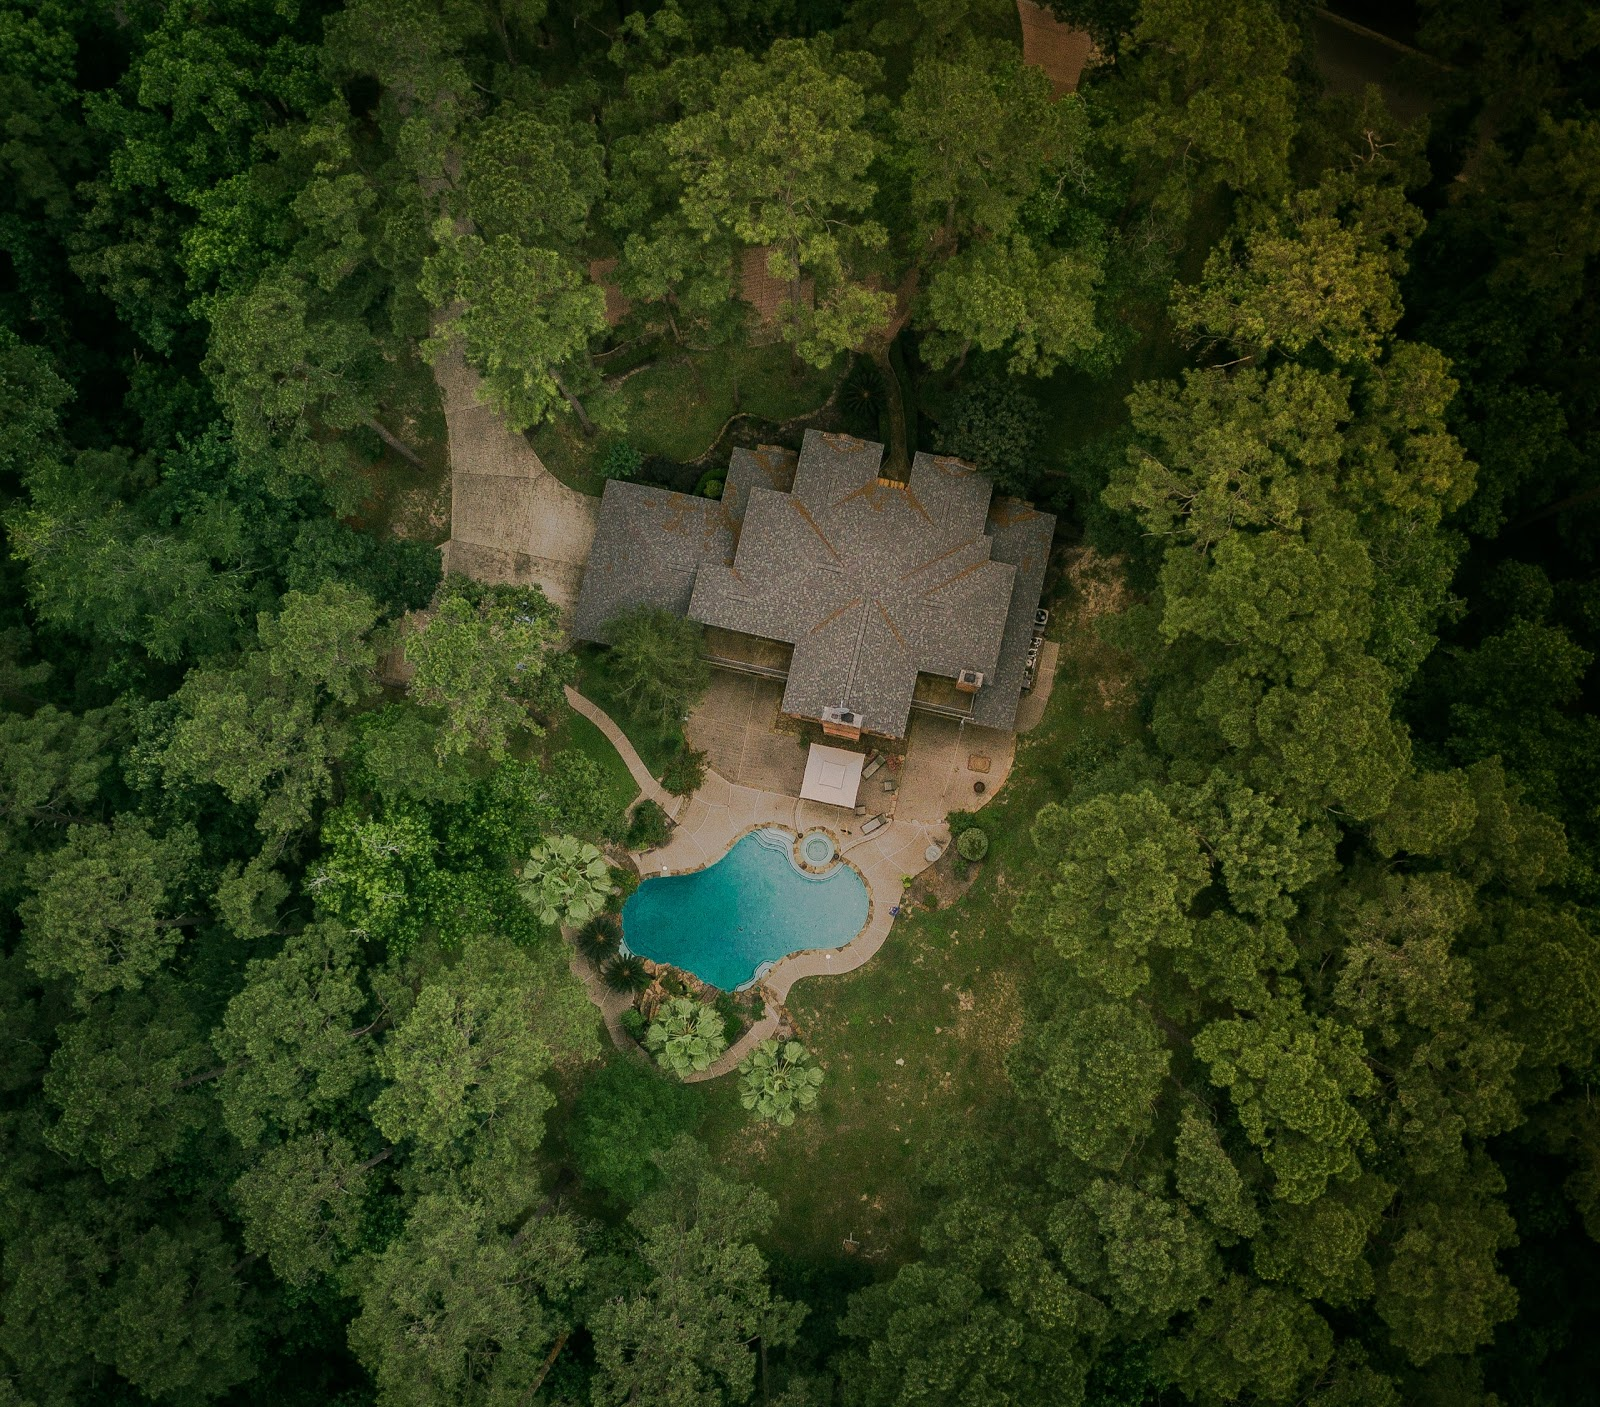 Aerial view of a house in a heavily wooded area